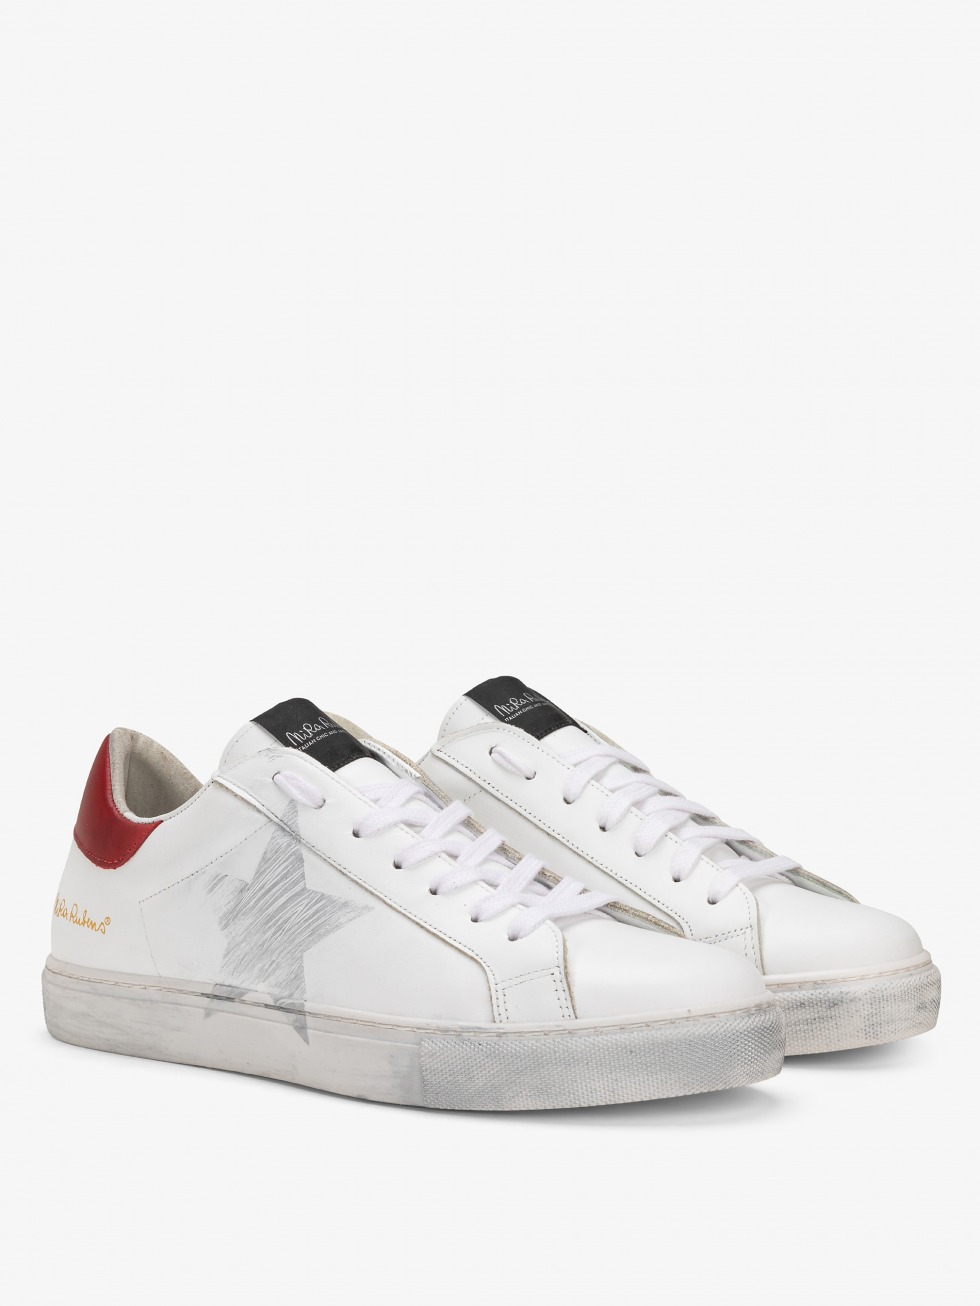 Martini M Sneakers - Star Red